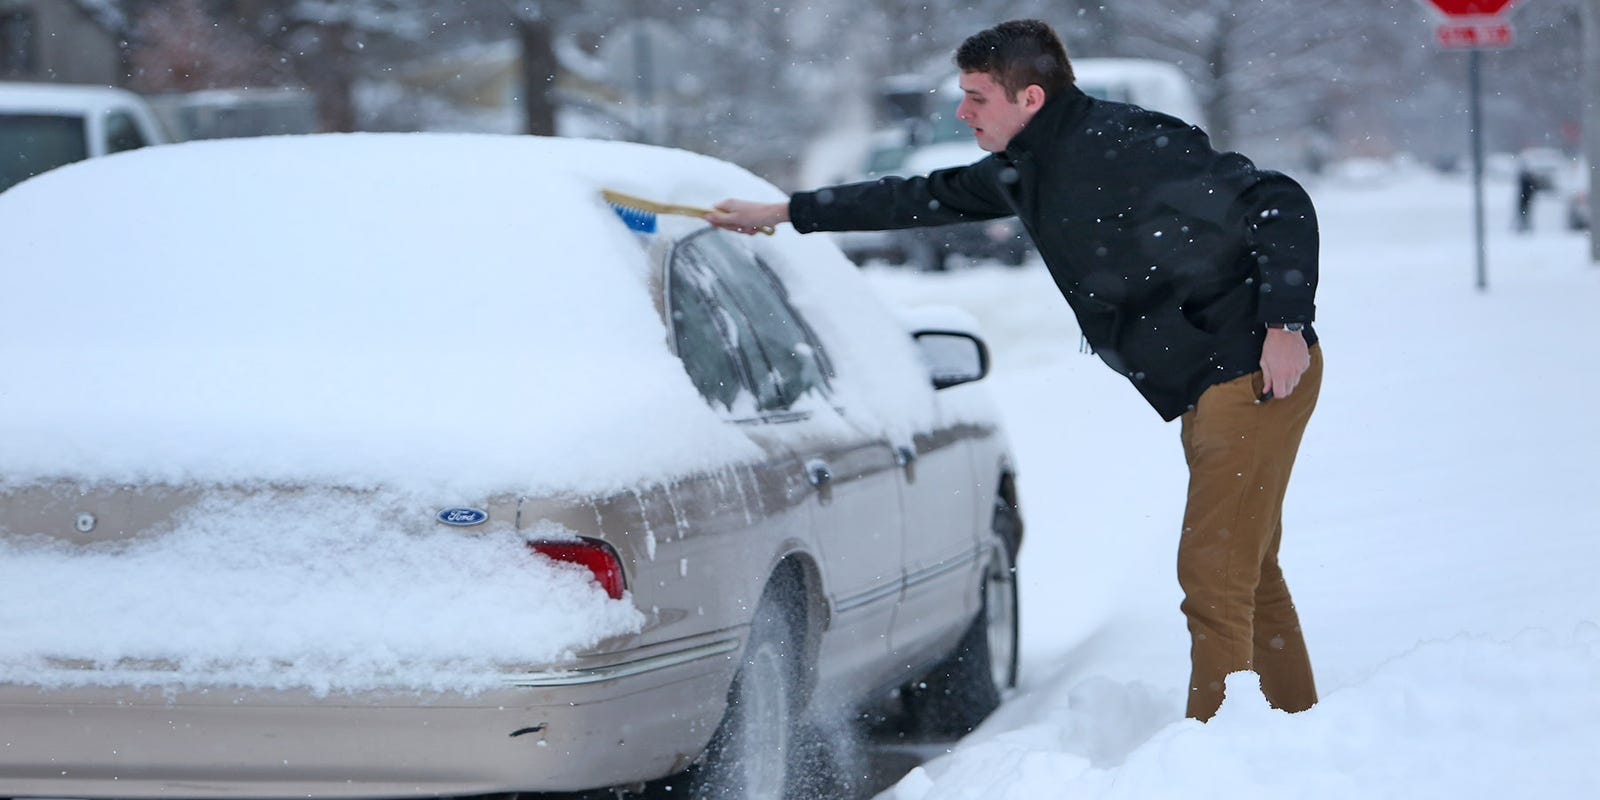 How To Get Ice Off Of Windshield >> How To Get Ice Off Your Windshield Quickly And Safely